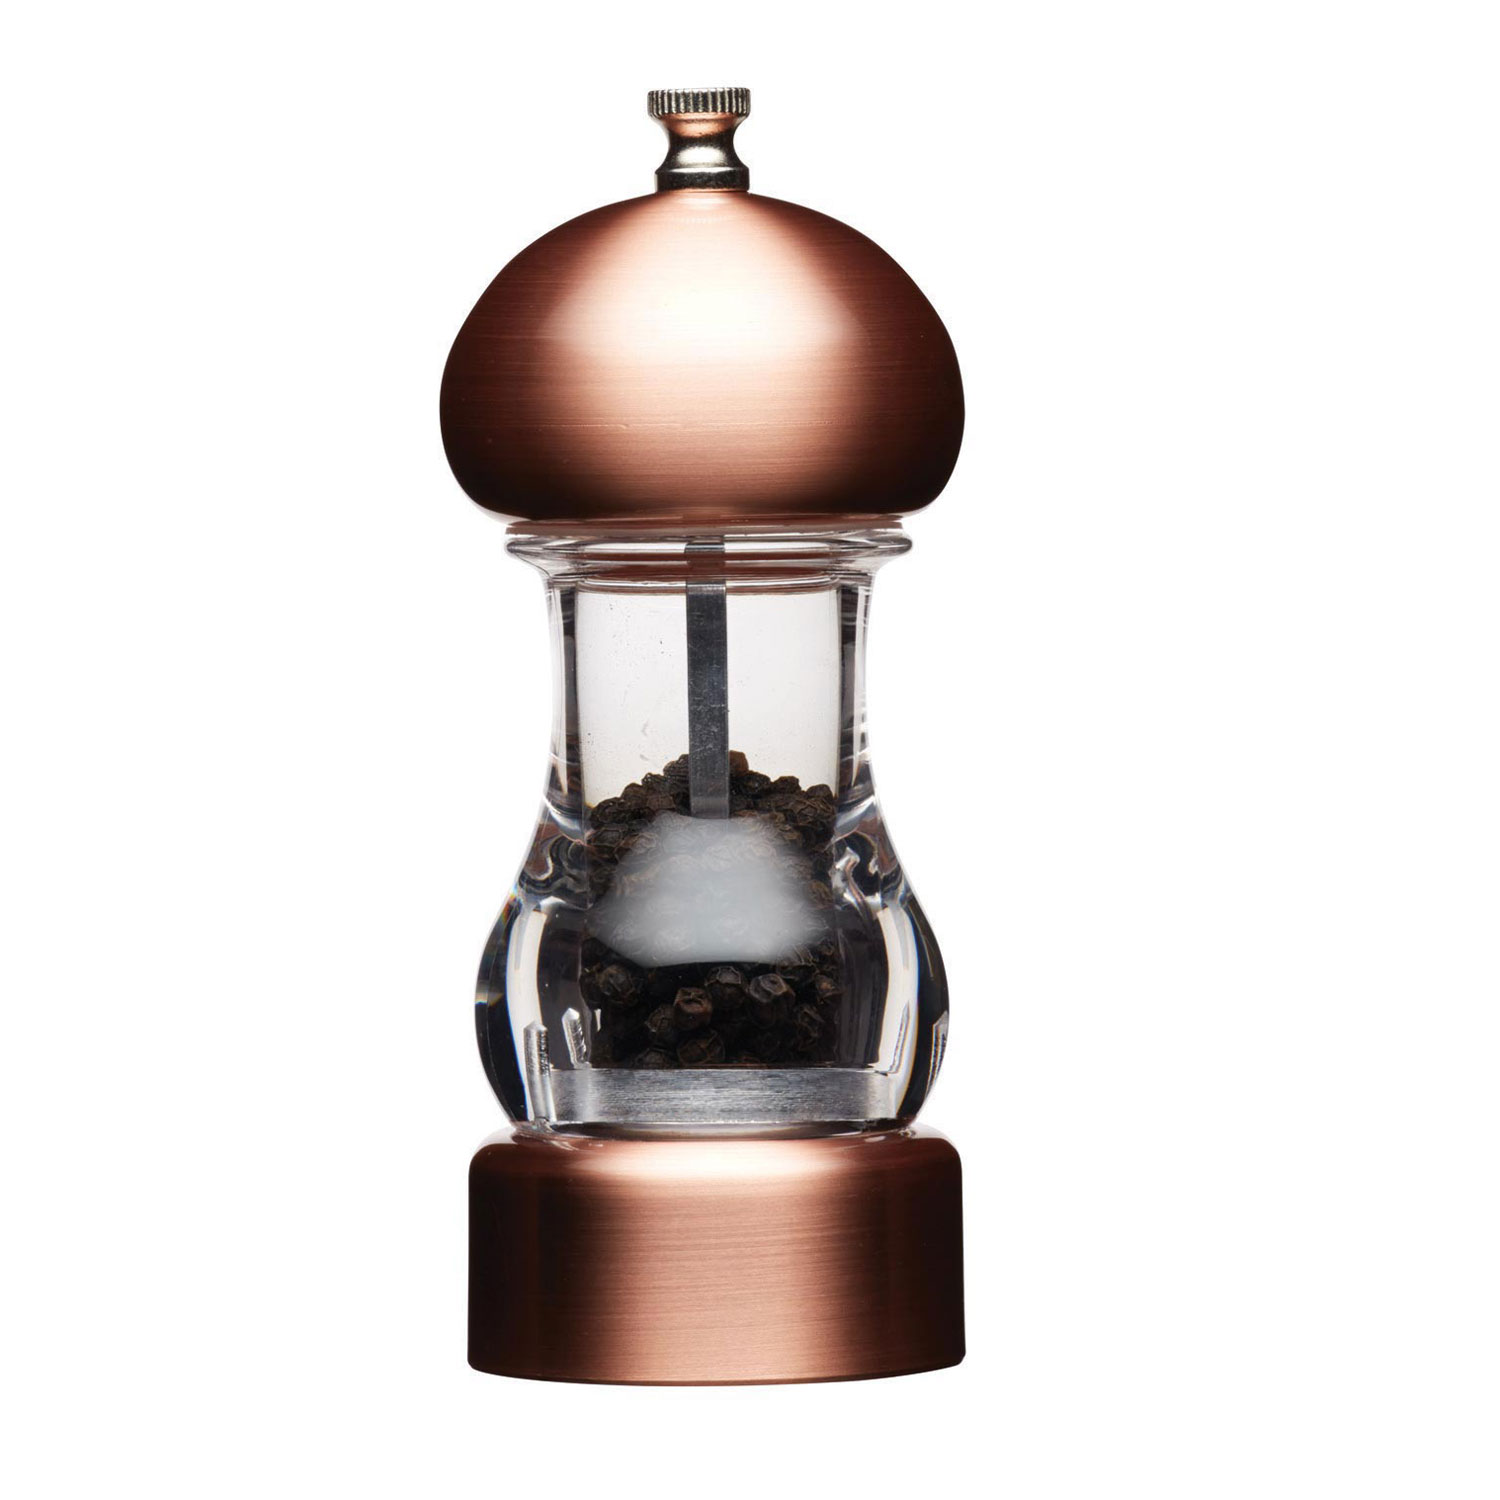 Image of Kitchencraft Filled Capstan Pepper Mill, Glass